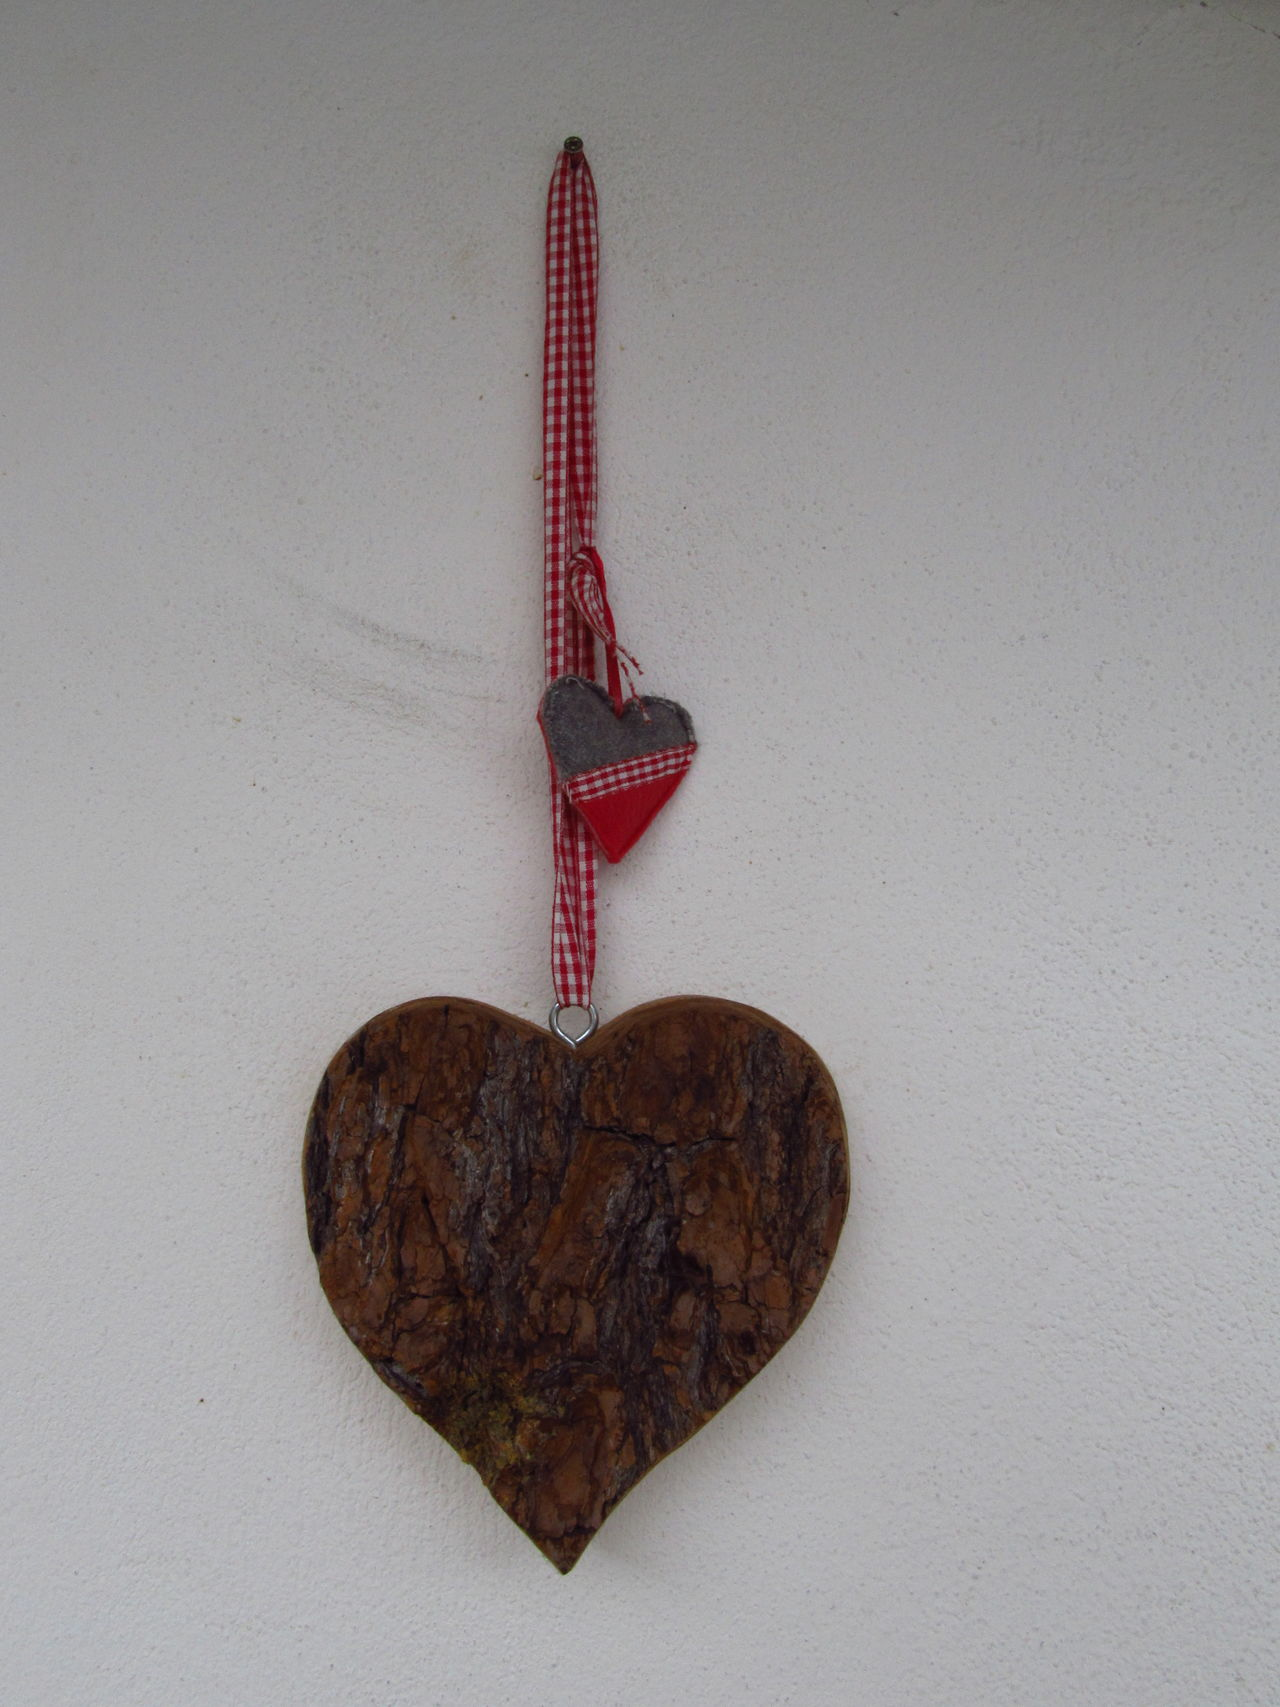 hearts House Close-up Day EyeEmNewHere Heart Shape Heart Sign Hearts Indoors  Love No People Wall Wooden